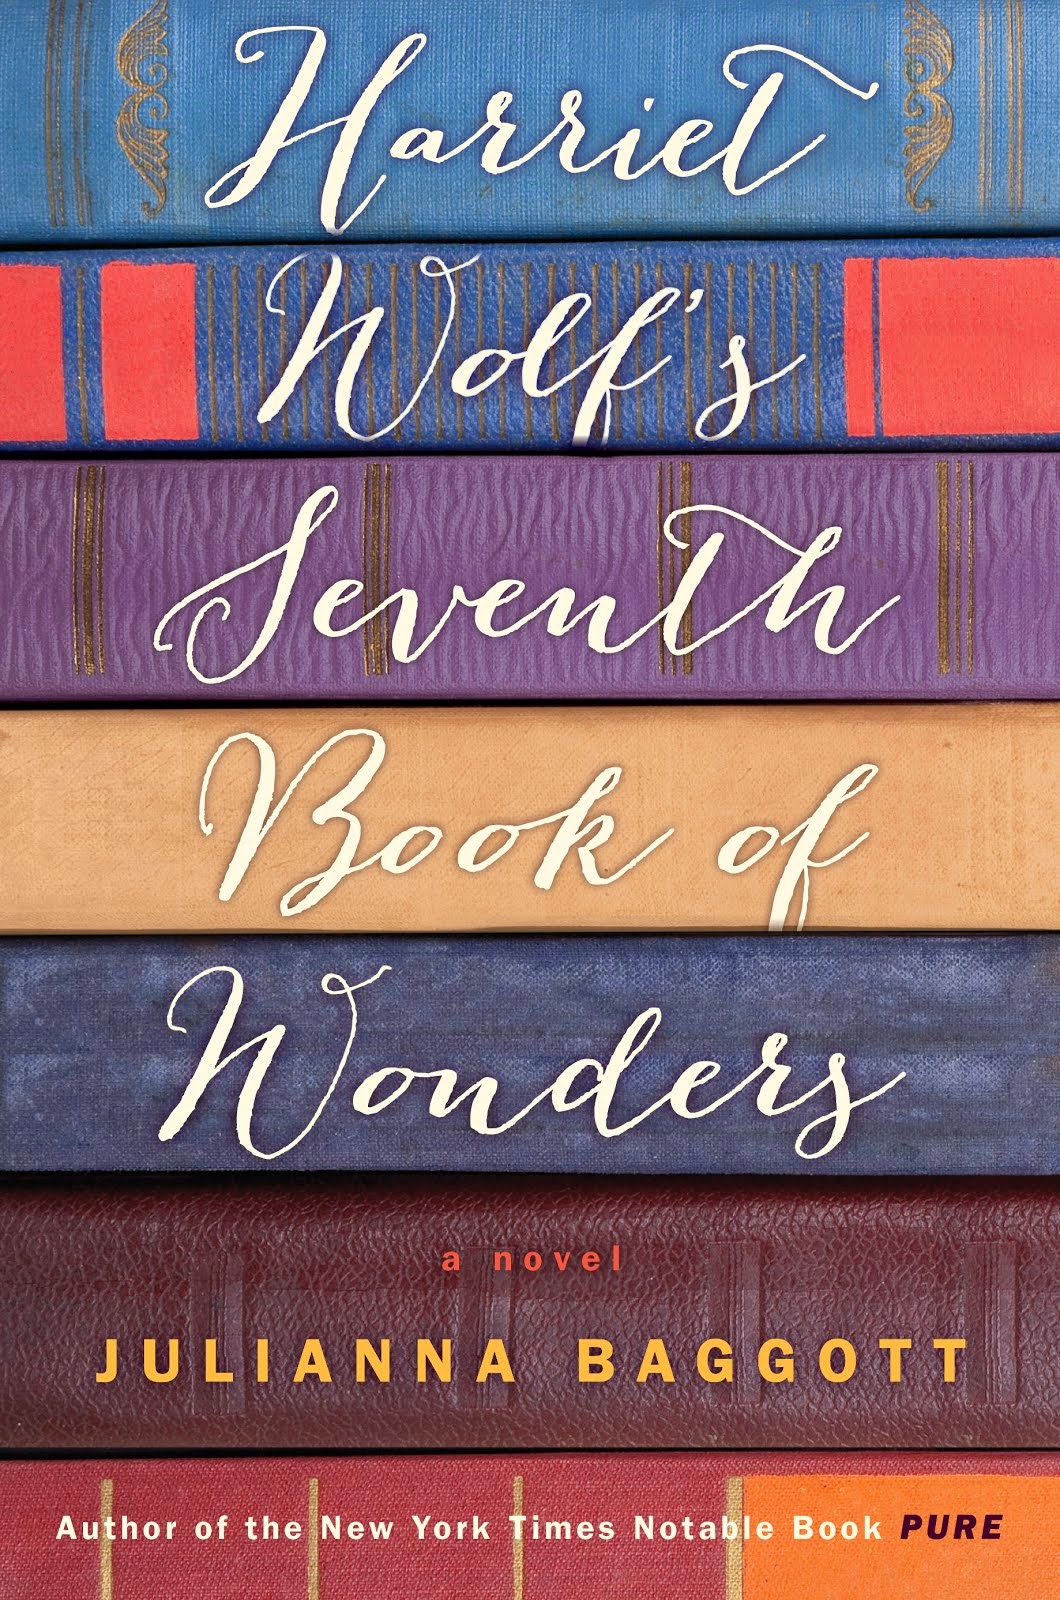 Harriet Wolf's Seventh Book of Wonders a New York Times Notable Book of the Year!